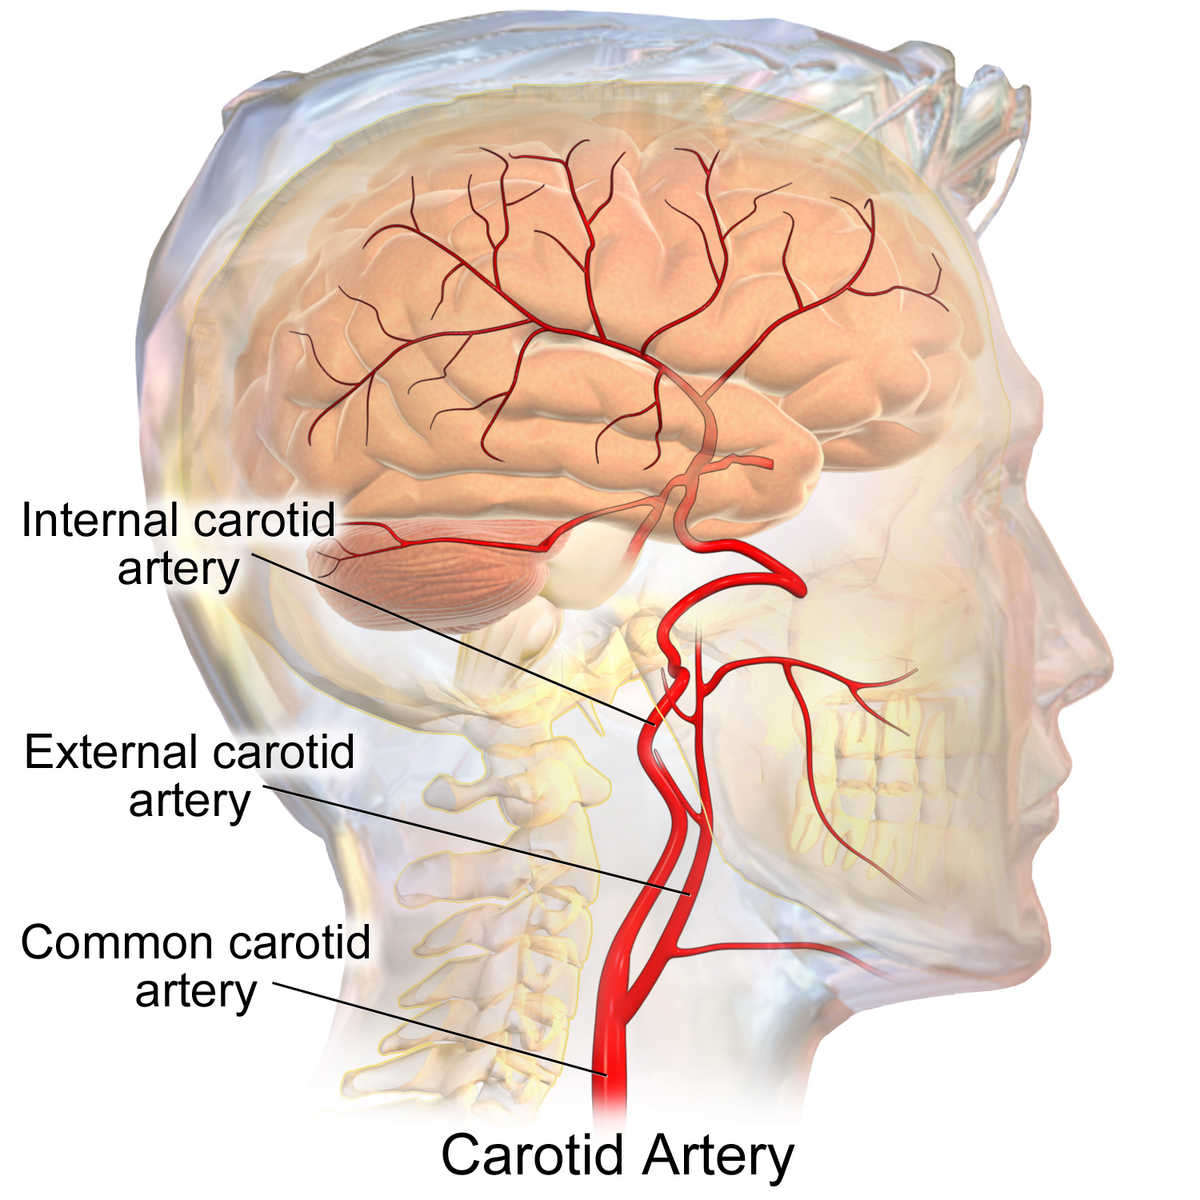 Internal carotid artery - Wikipedia